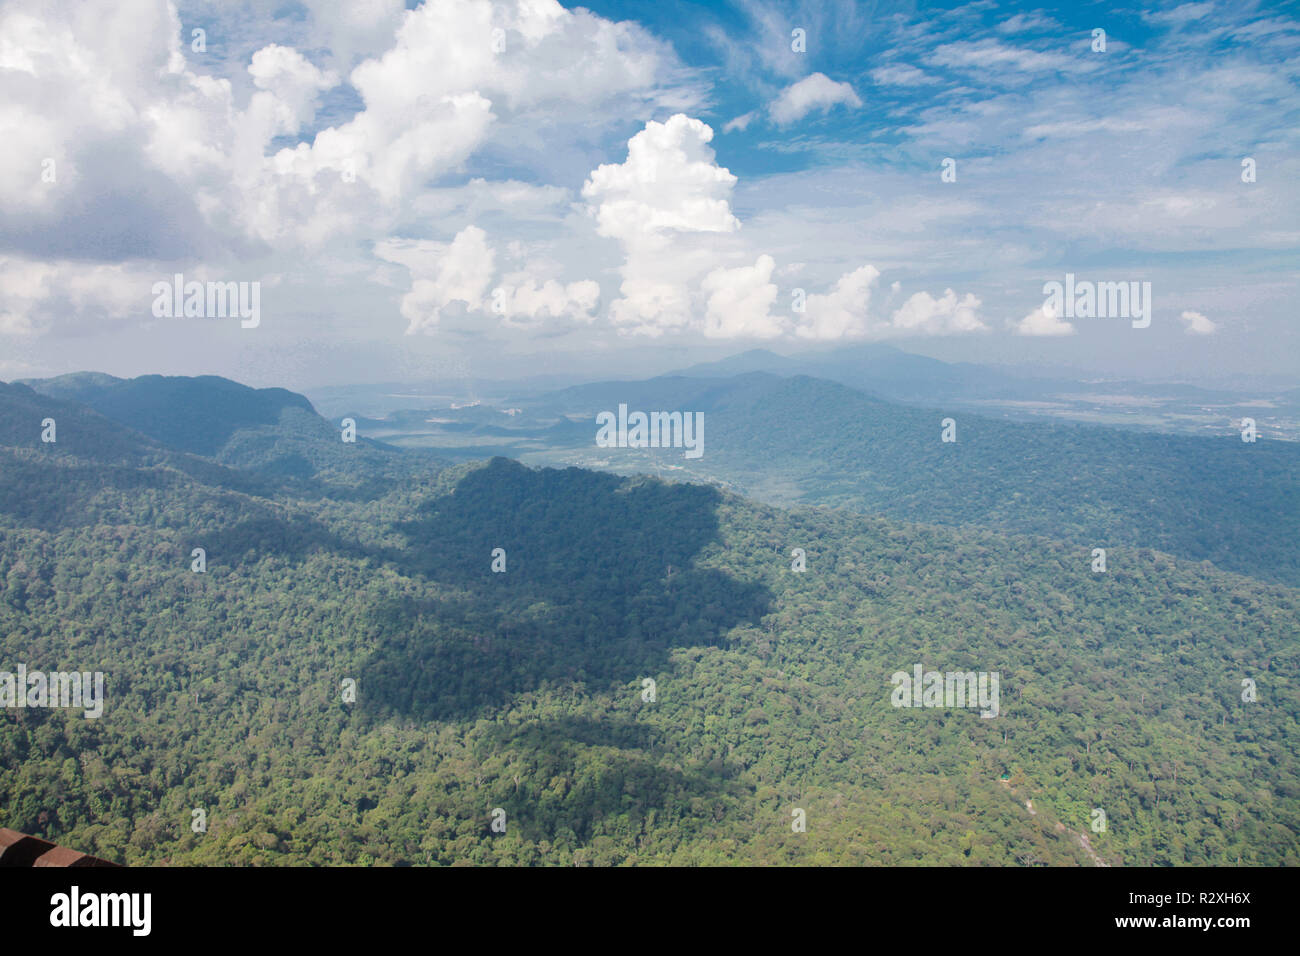 Langkawi Island Mountain View From Top Above Stock Photo 225548370